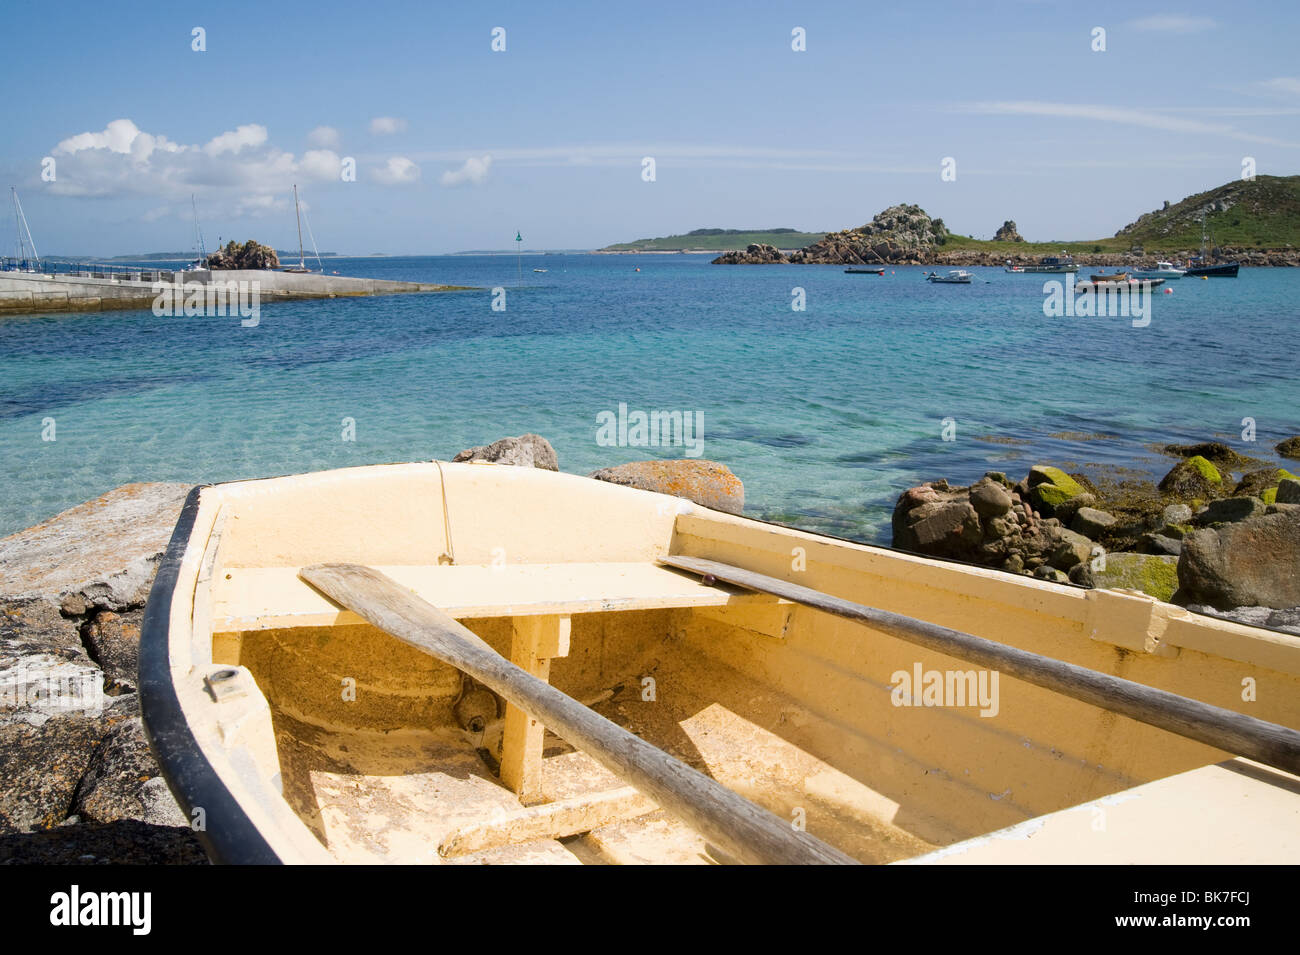 Rowing boat on st agnes in the isles of scilly - Stock Image